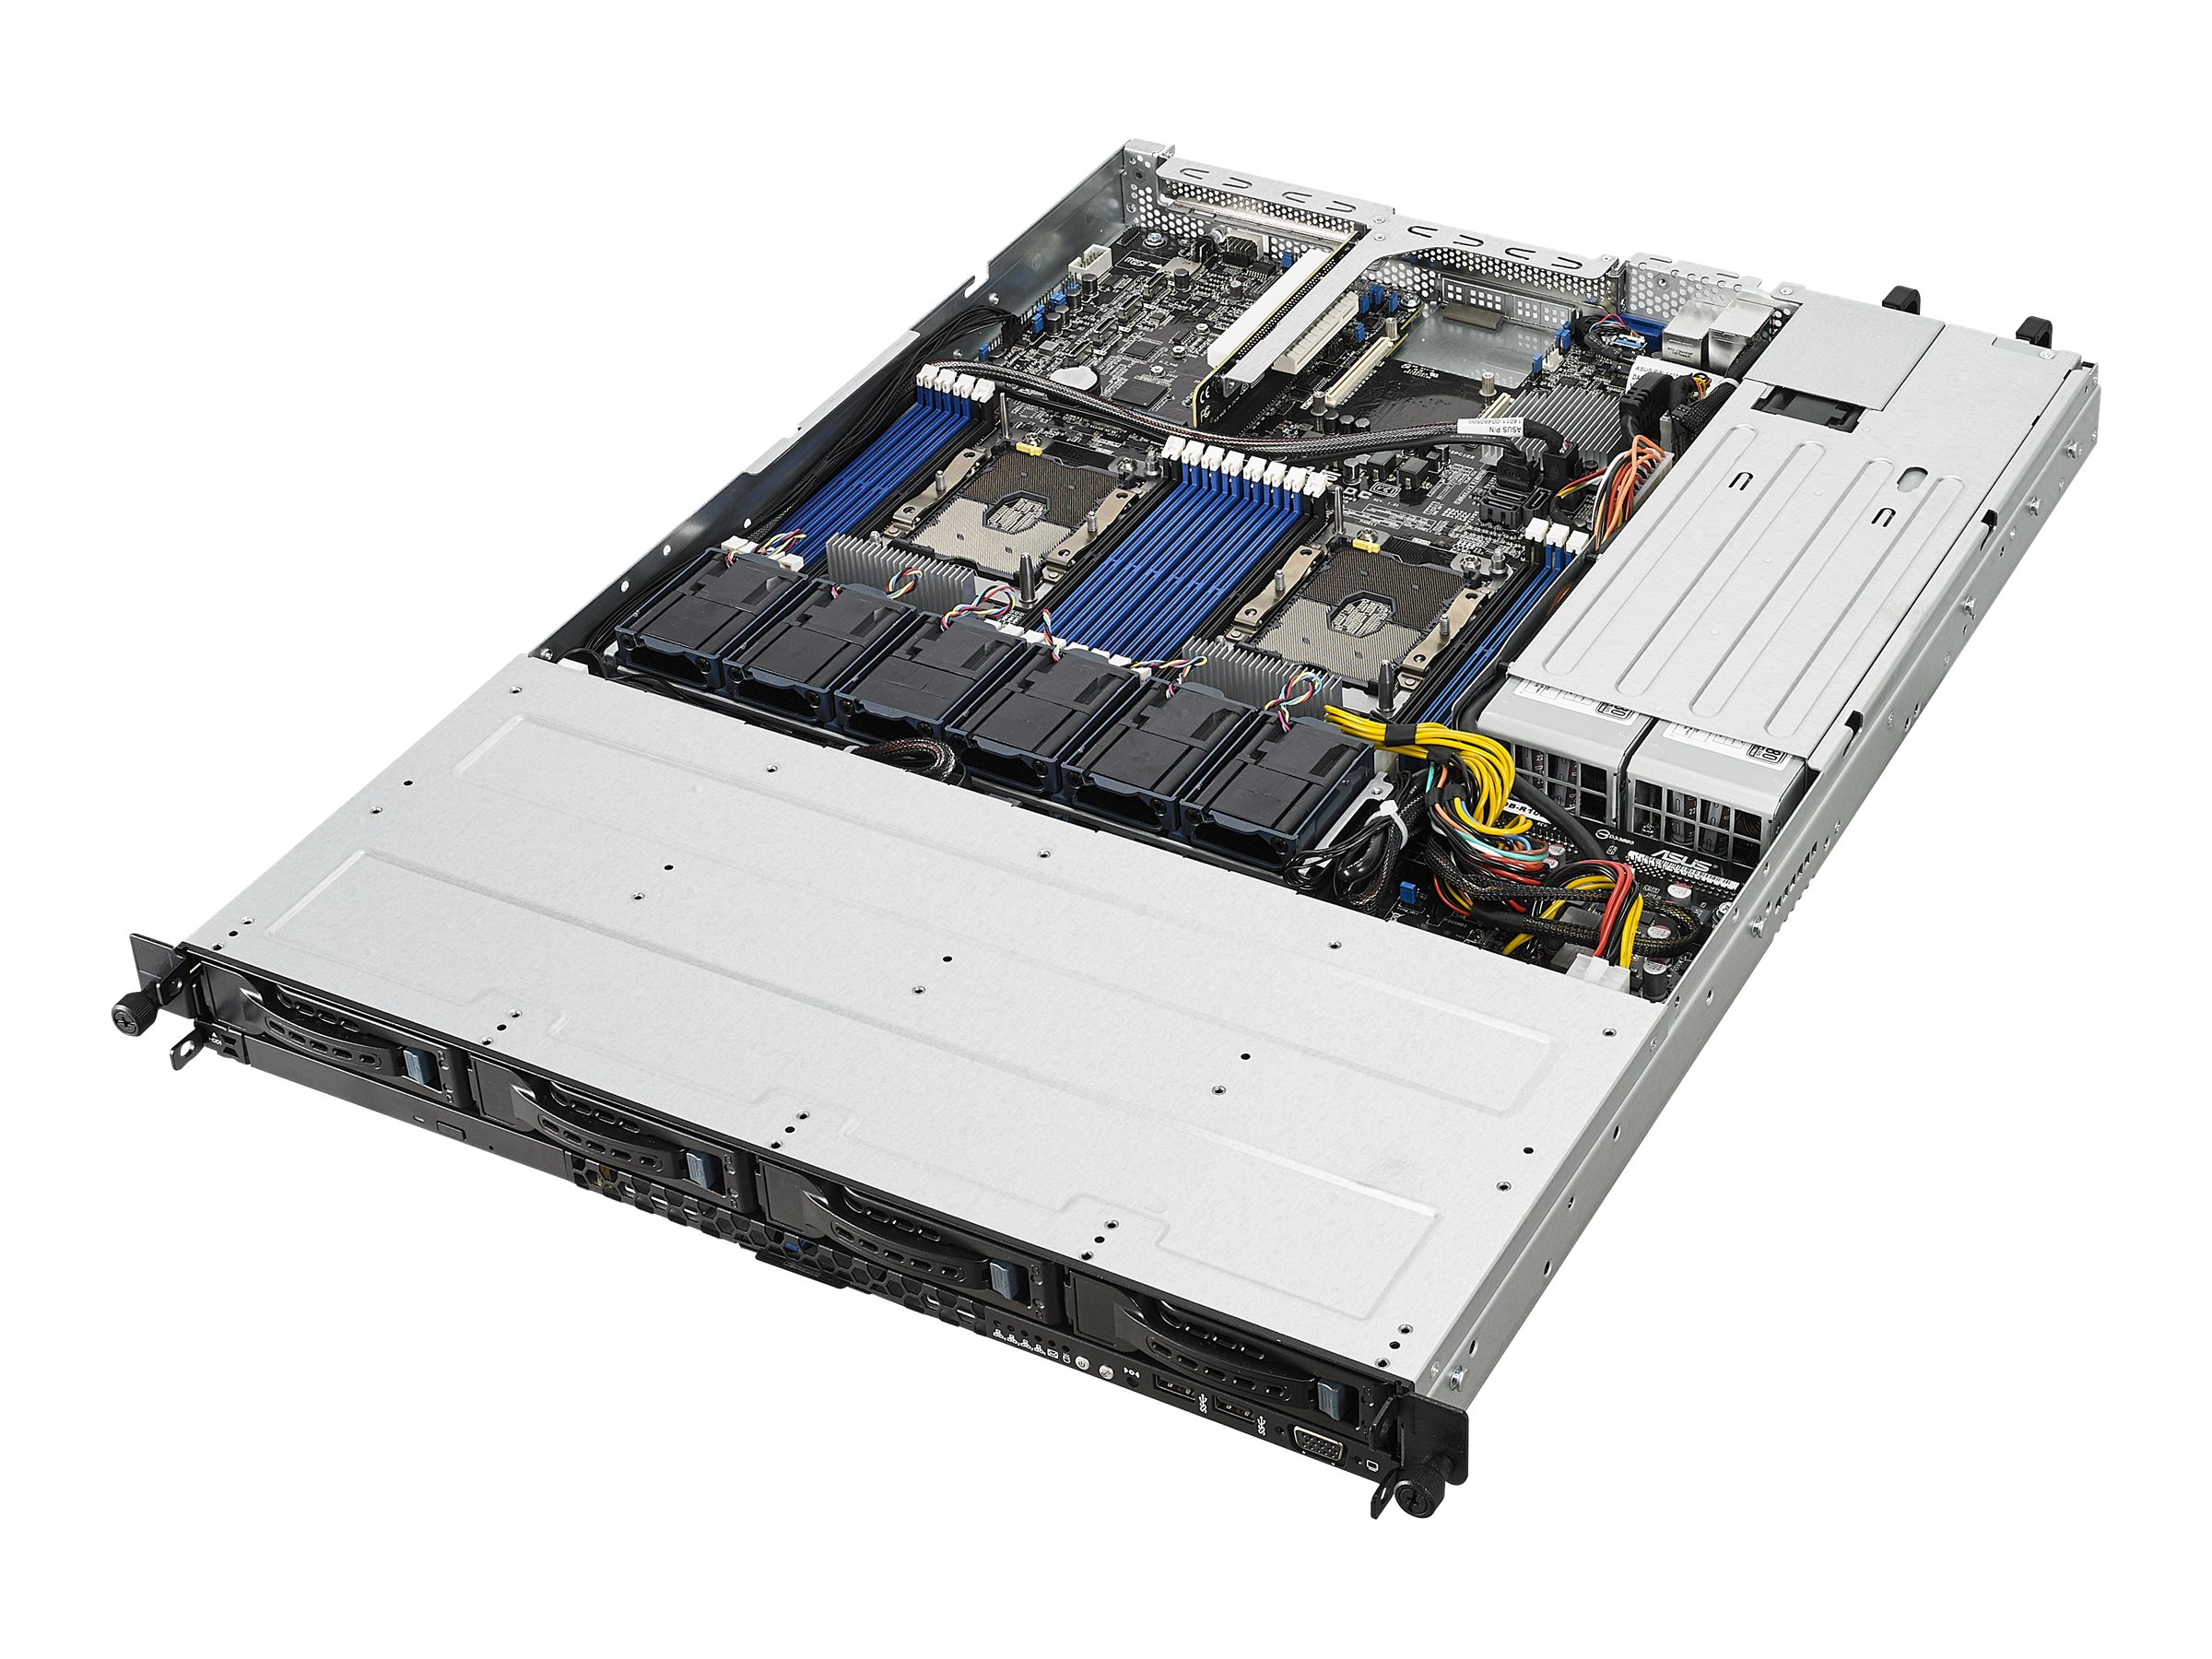 "ASUS RS500-E9-RS4-U - Server - Rack-Montage - 1U - zweiweg - keine CPU - RAM 0 GB - SATA - Hot-Swap 6.4 cm, 8.9 cm (2.5"", 3.5"")"